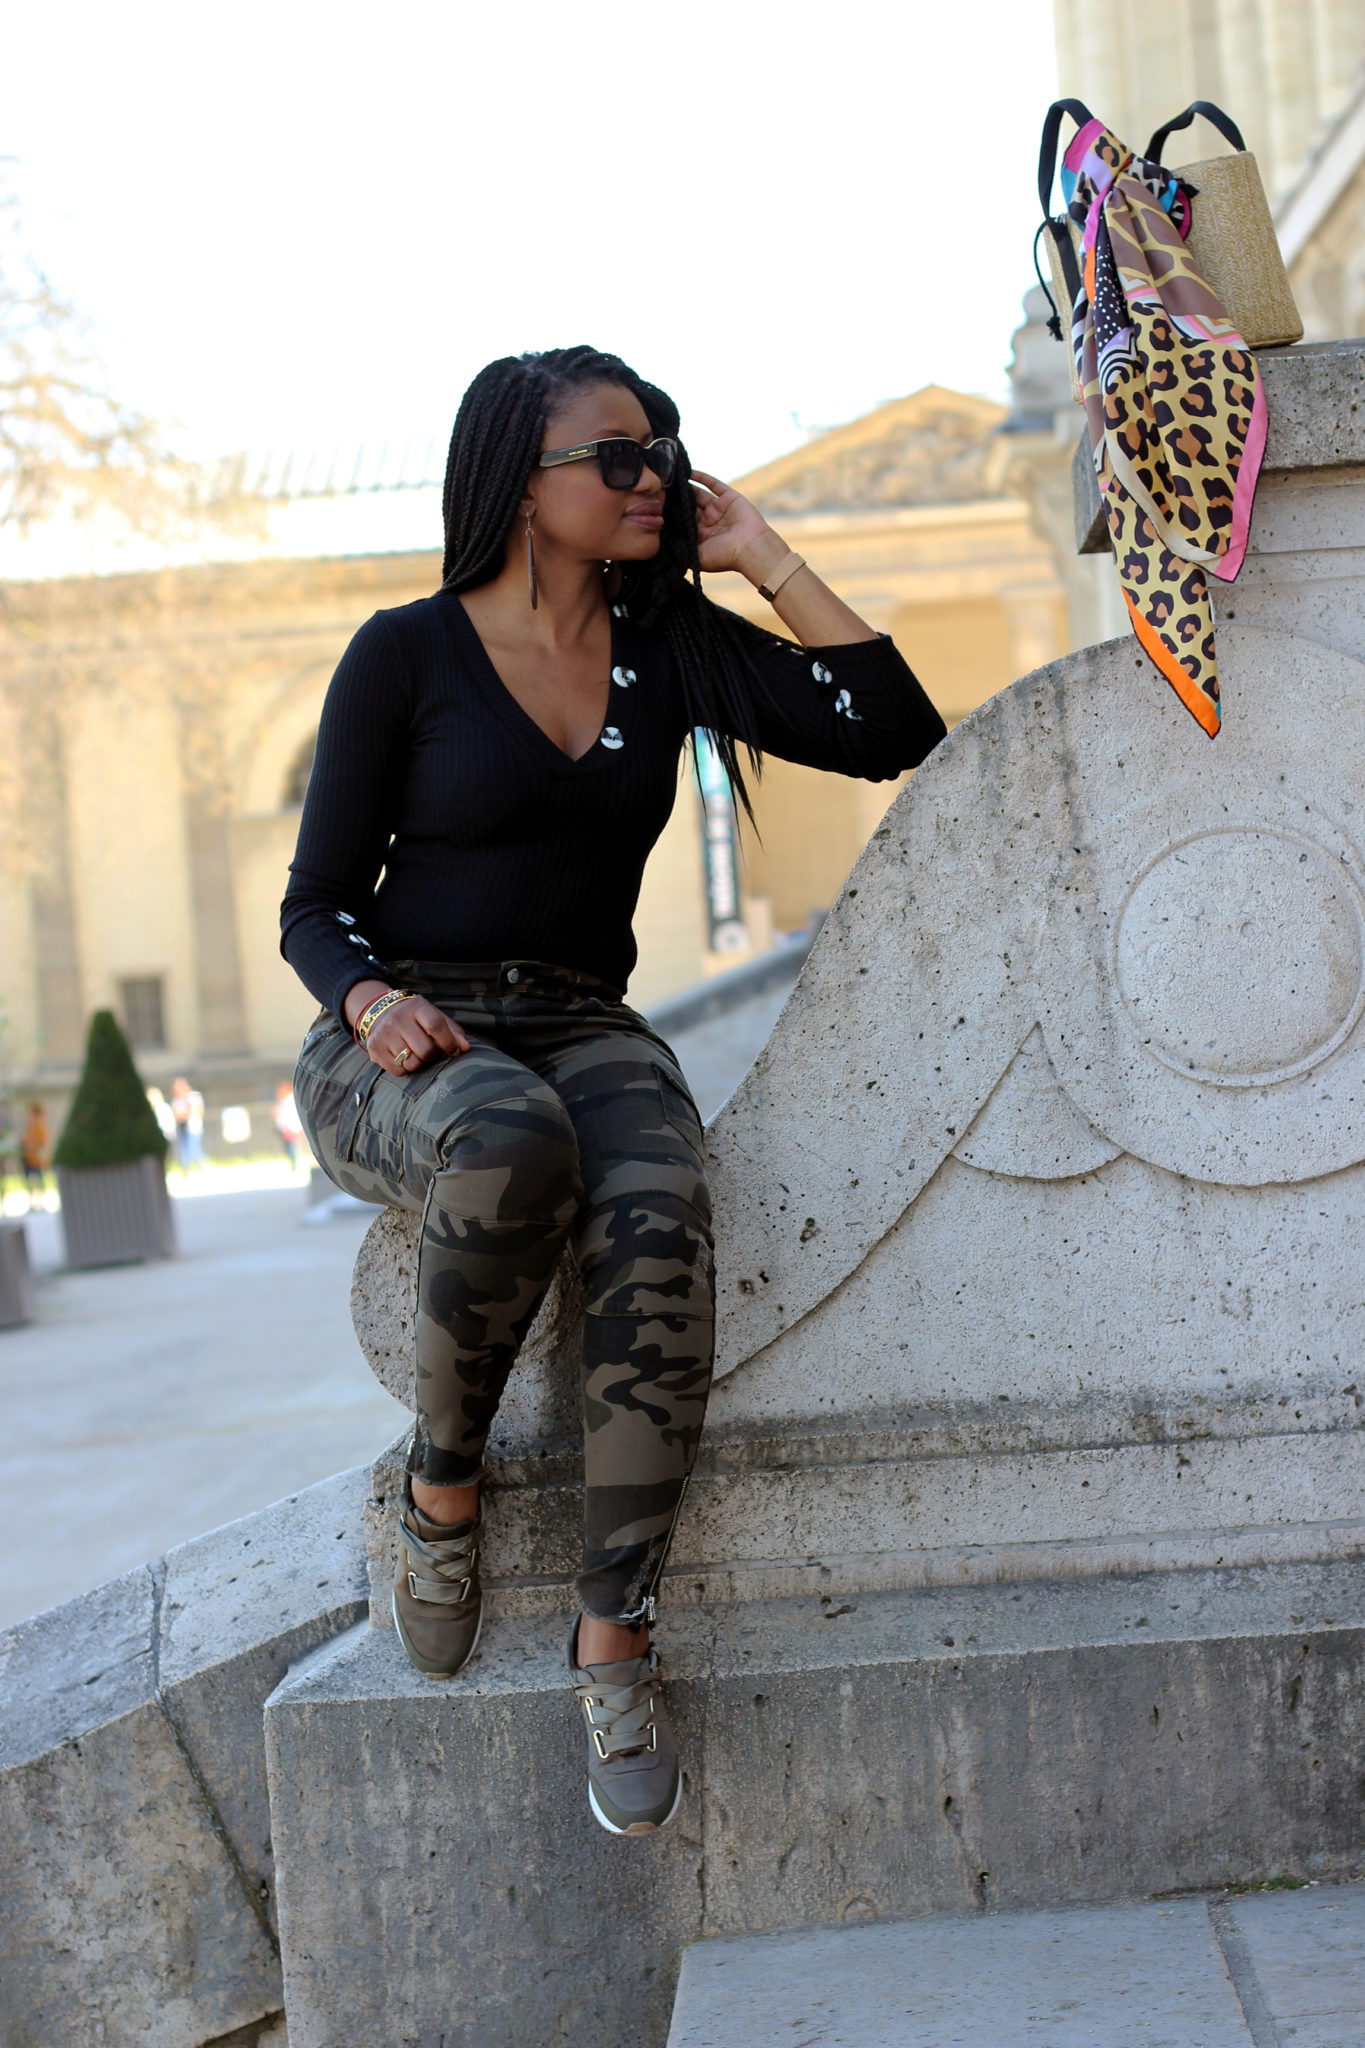 camouflage pantalon cargo militaire camo in the city 05